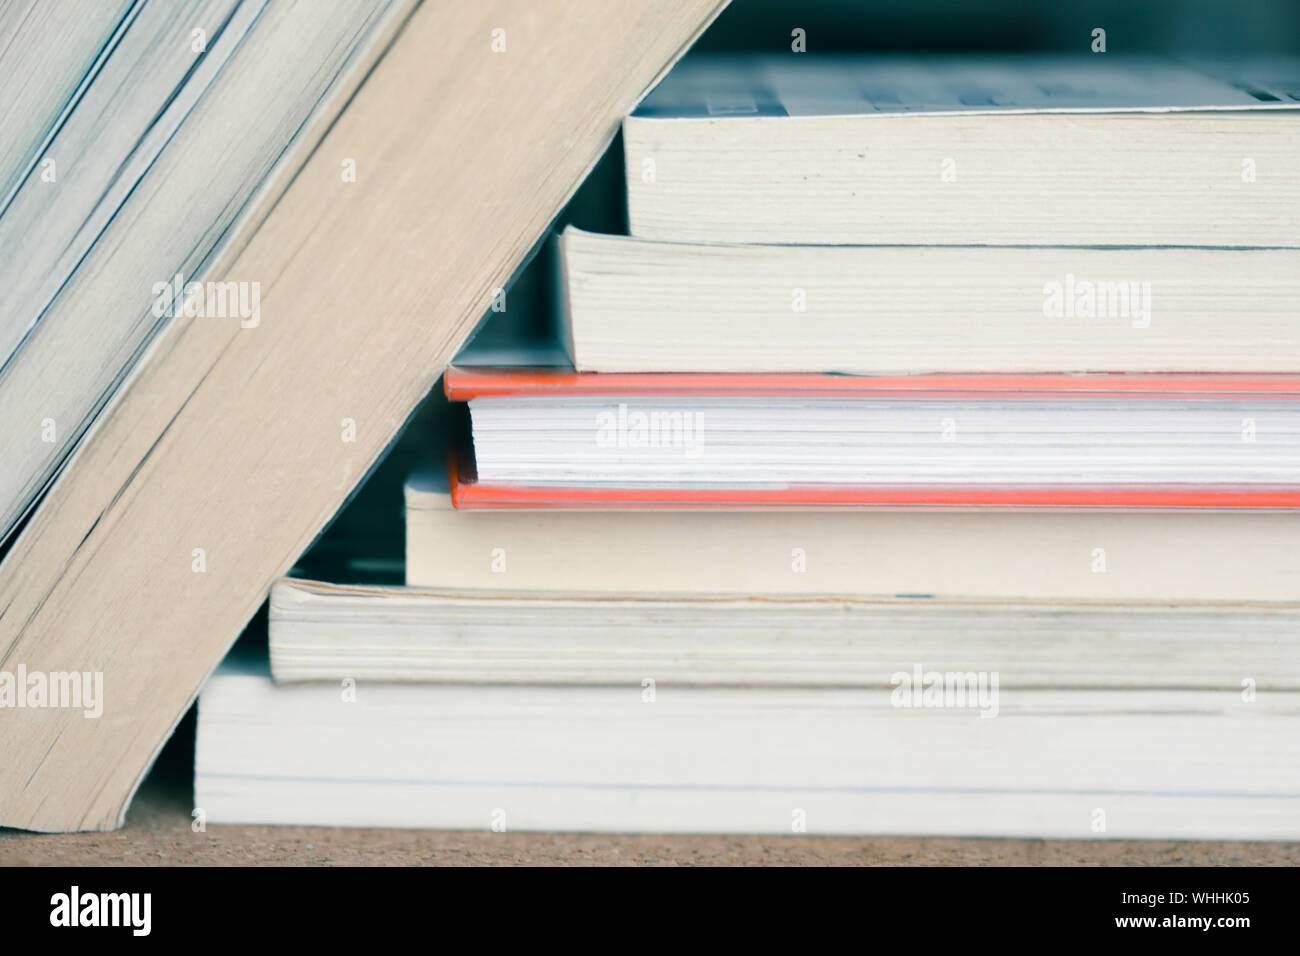 A large number of old books stacked on top of each other. Background shot, clean blank copy space Stock Photo